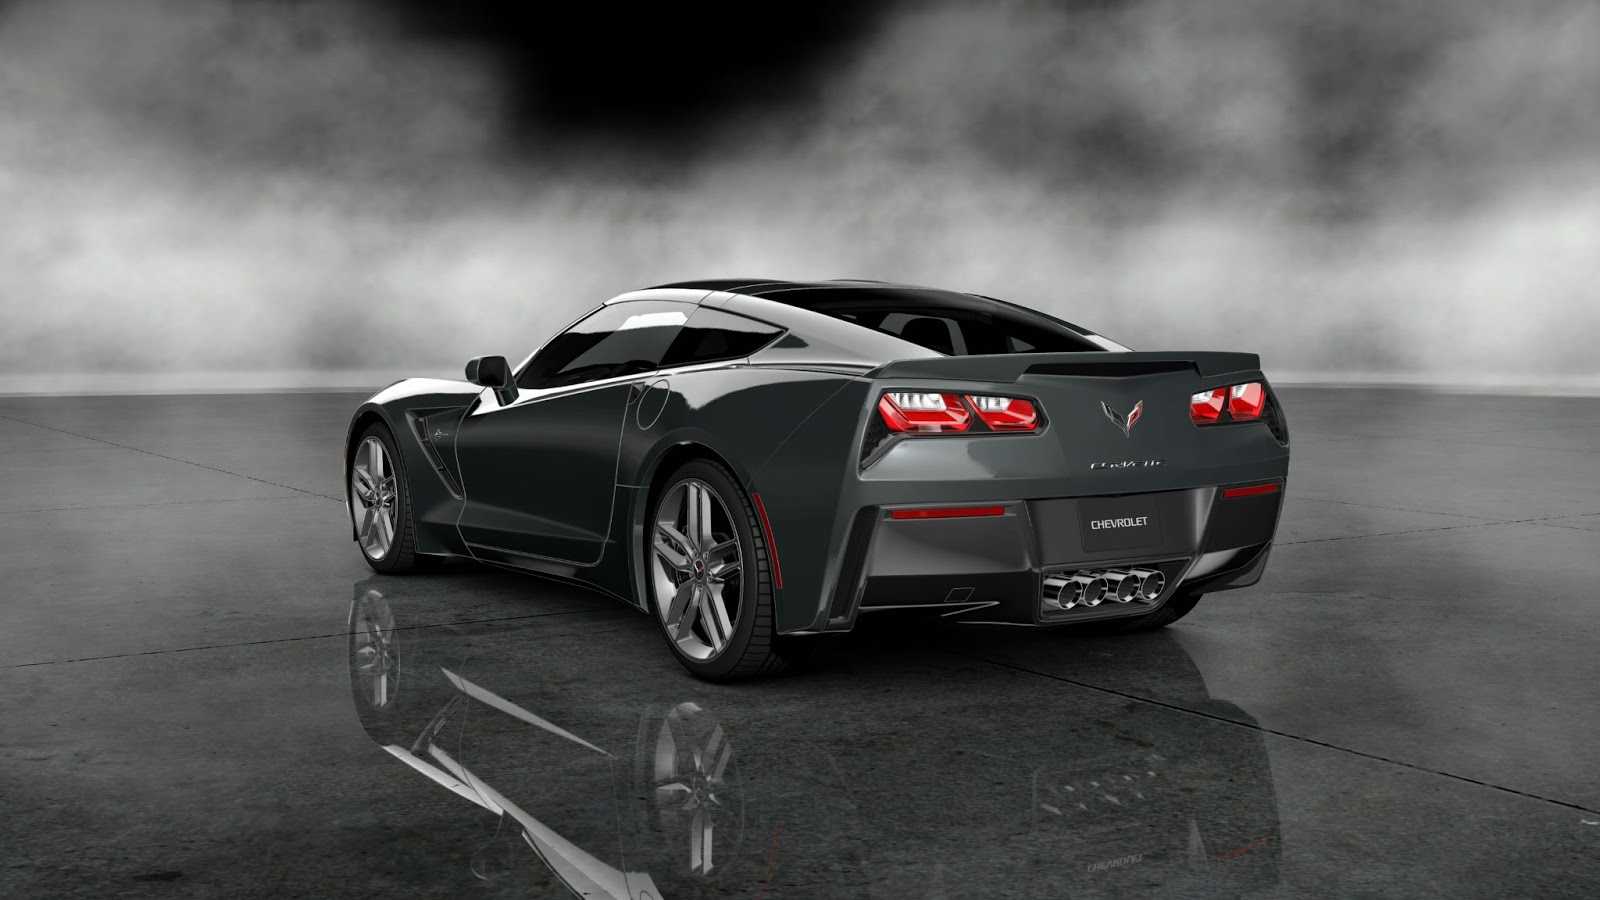 Wallpapers Wallpaper The Best Looking American Sports Car